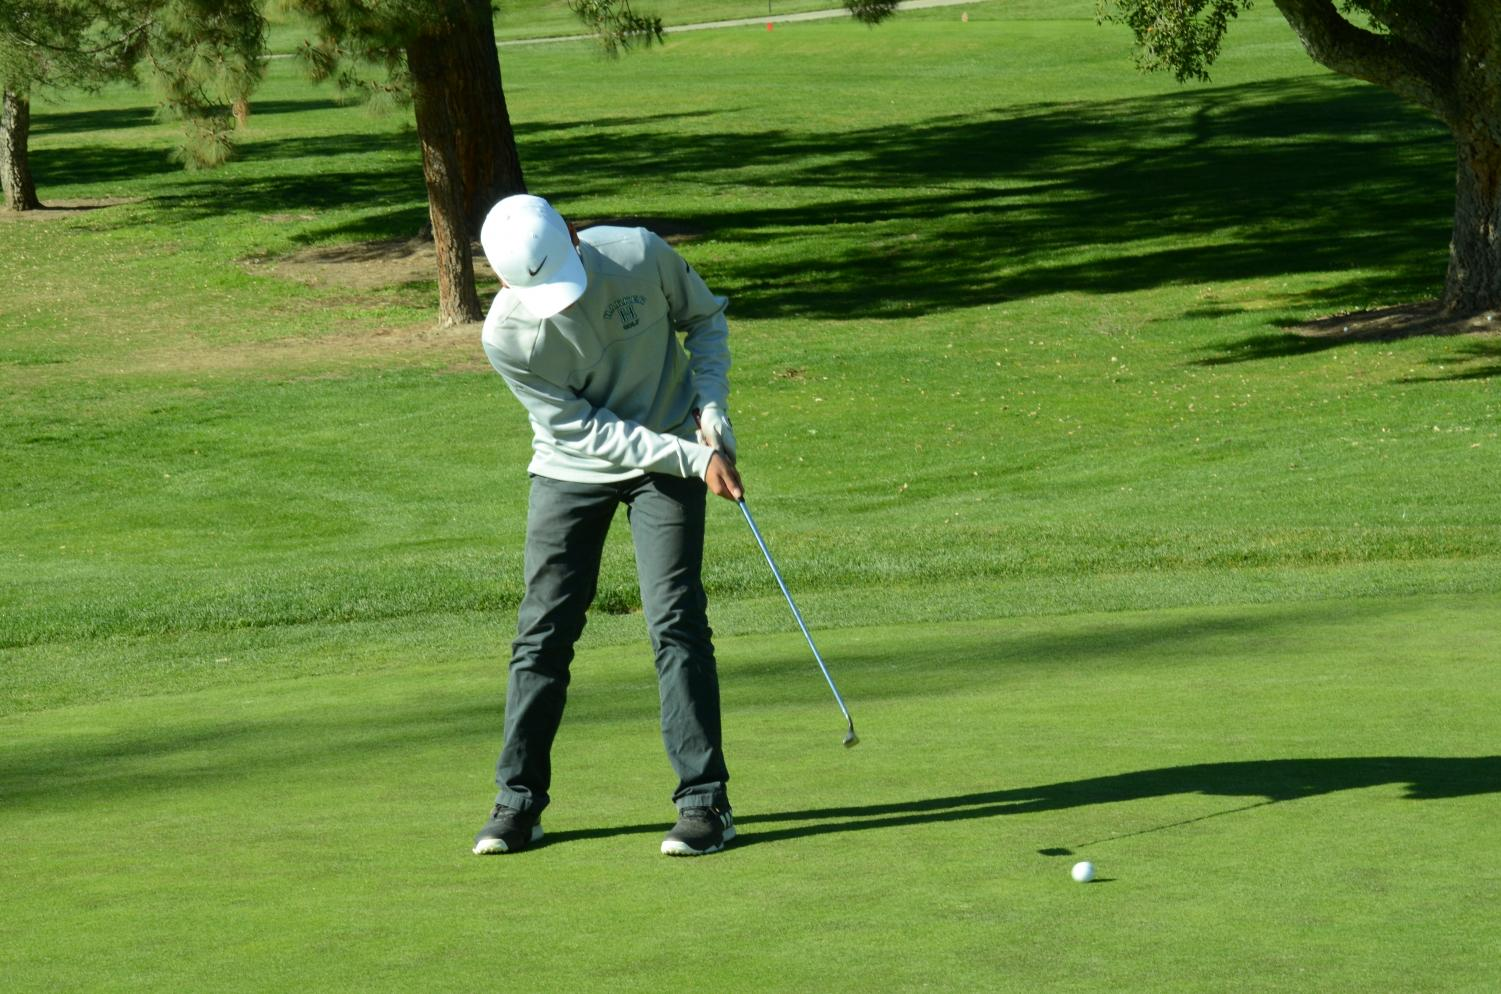 Gabe Yang (9) putts a golf ball across the San Jose Country Club's golf course. The boys' golf team played and defeated Nueva and Crystal Springs, keeping their undefeated streak of 6-0.